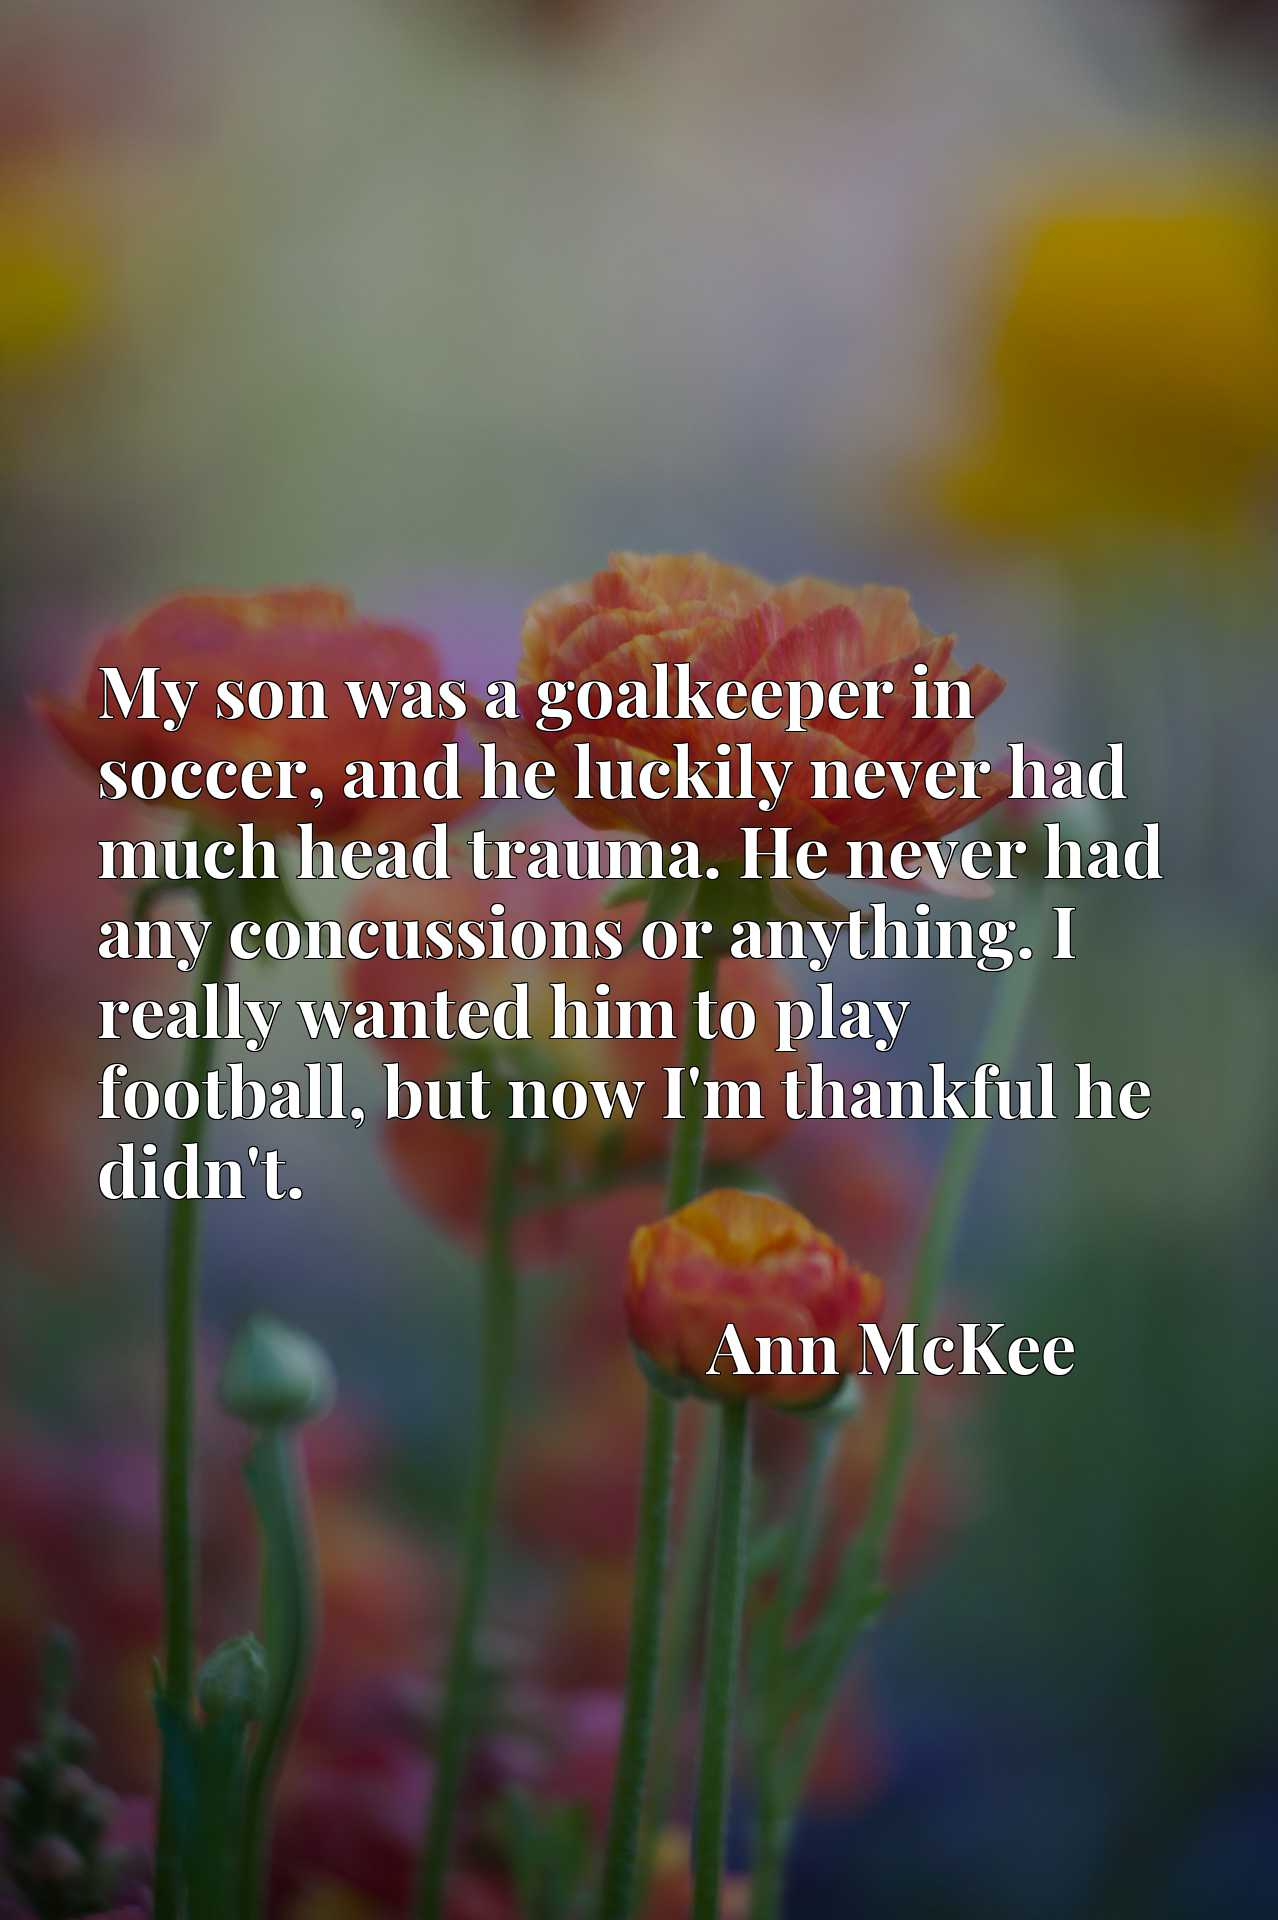 My son was a goalkeeper in soccer, and he luckily never had much head trauma. He never had any concussions or anything. I really wanted him to play football, but now I'm thankful he didn't.